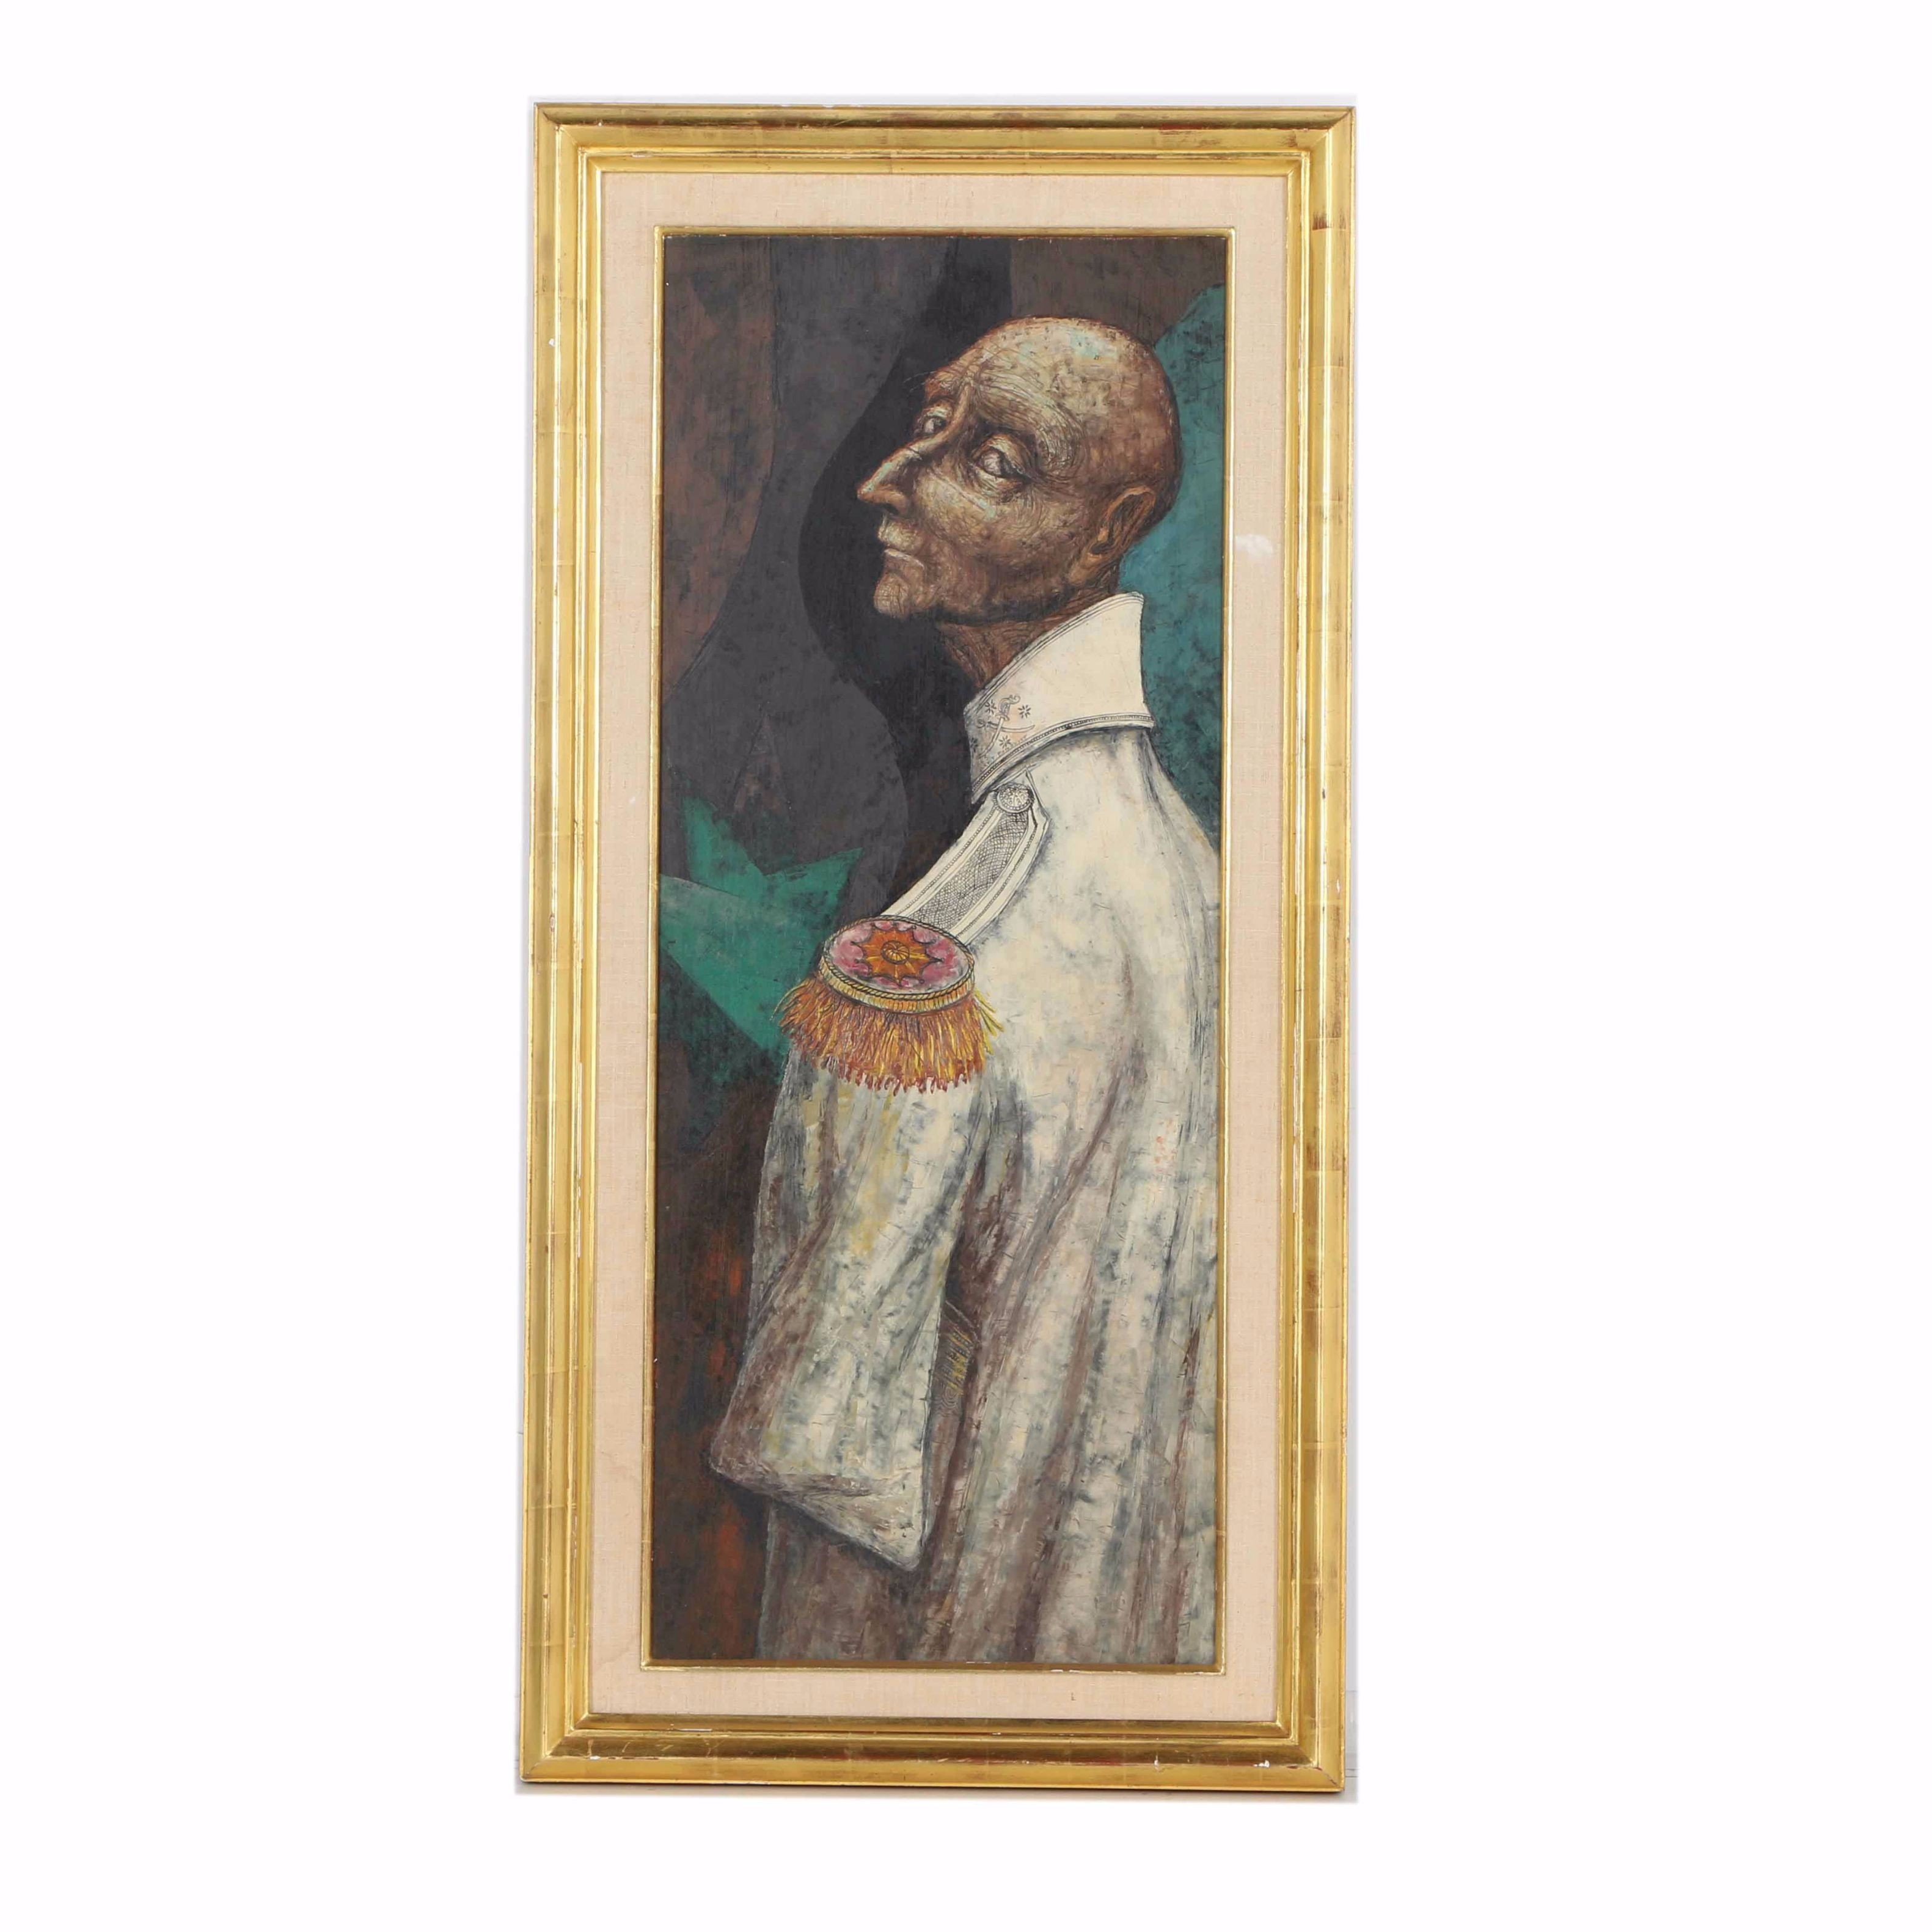 Oil Painting on Wood Panel of a Man with Epaulets